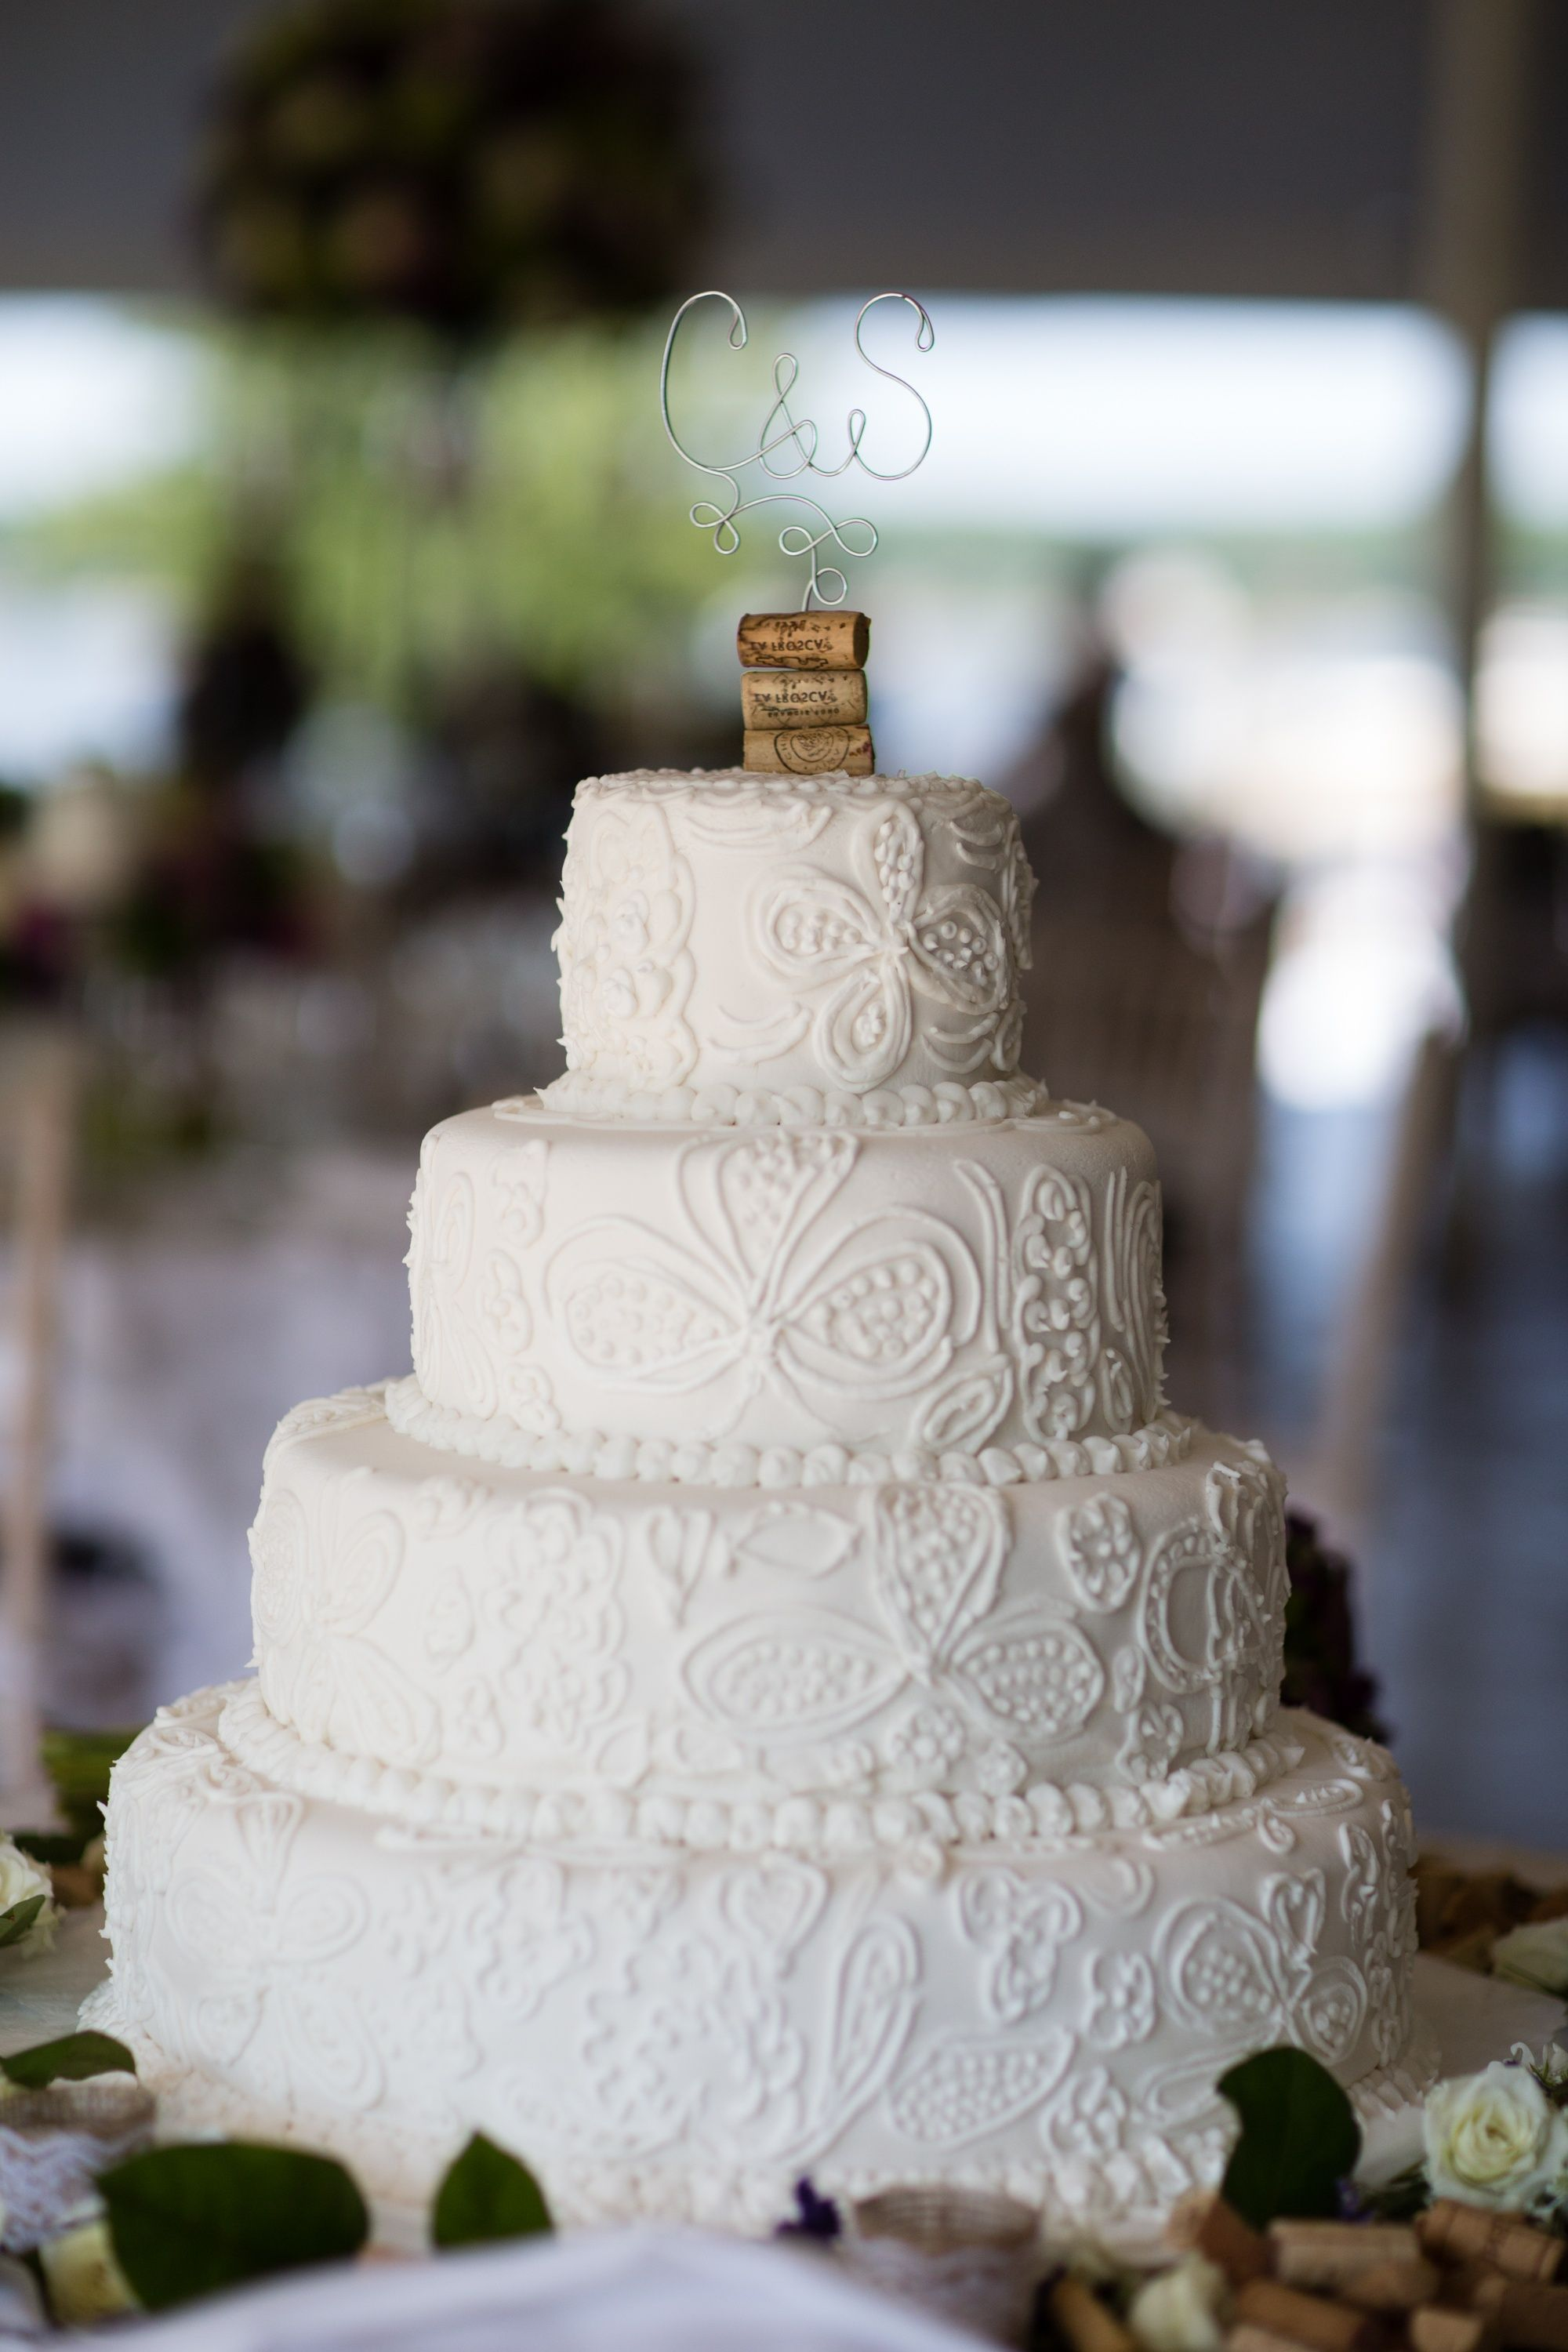 Wedding Cake Suppliers North East - 5000+ Simple Wedding Cakes